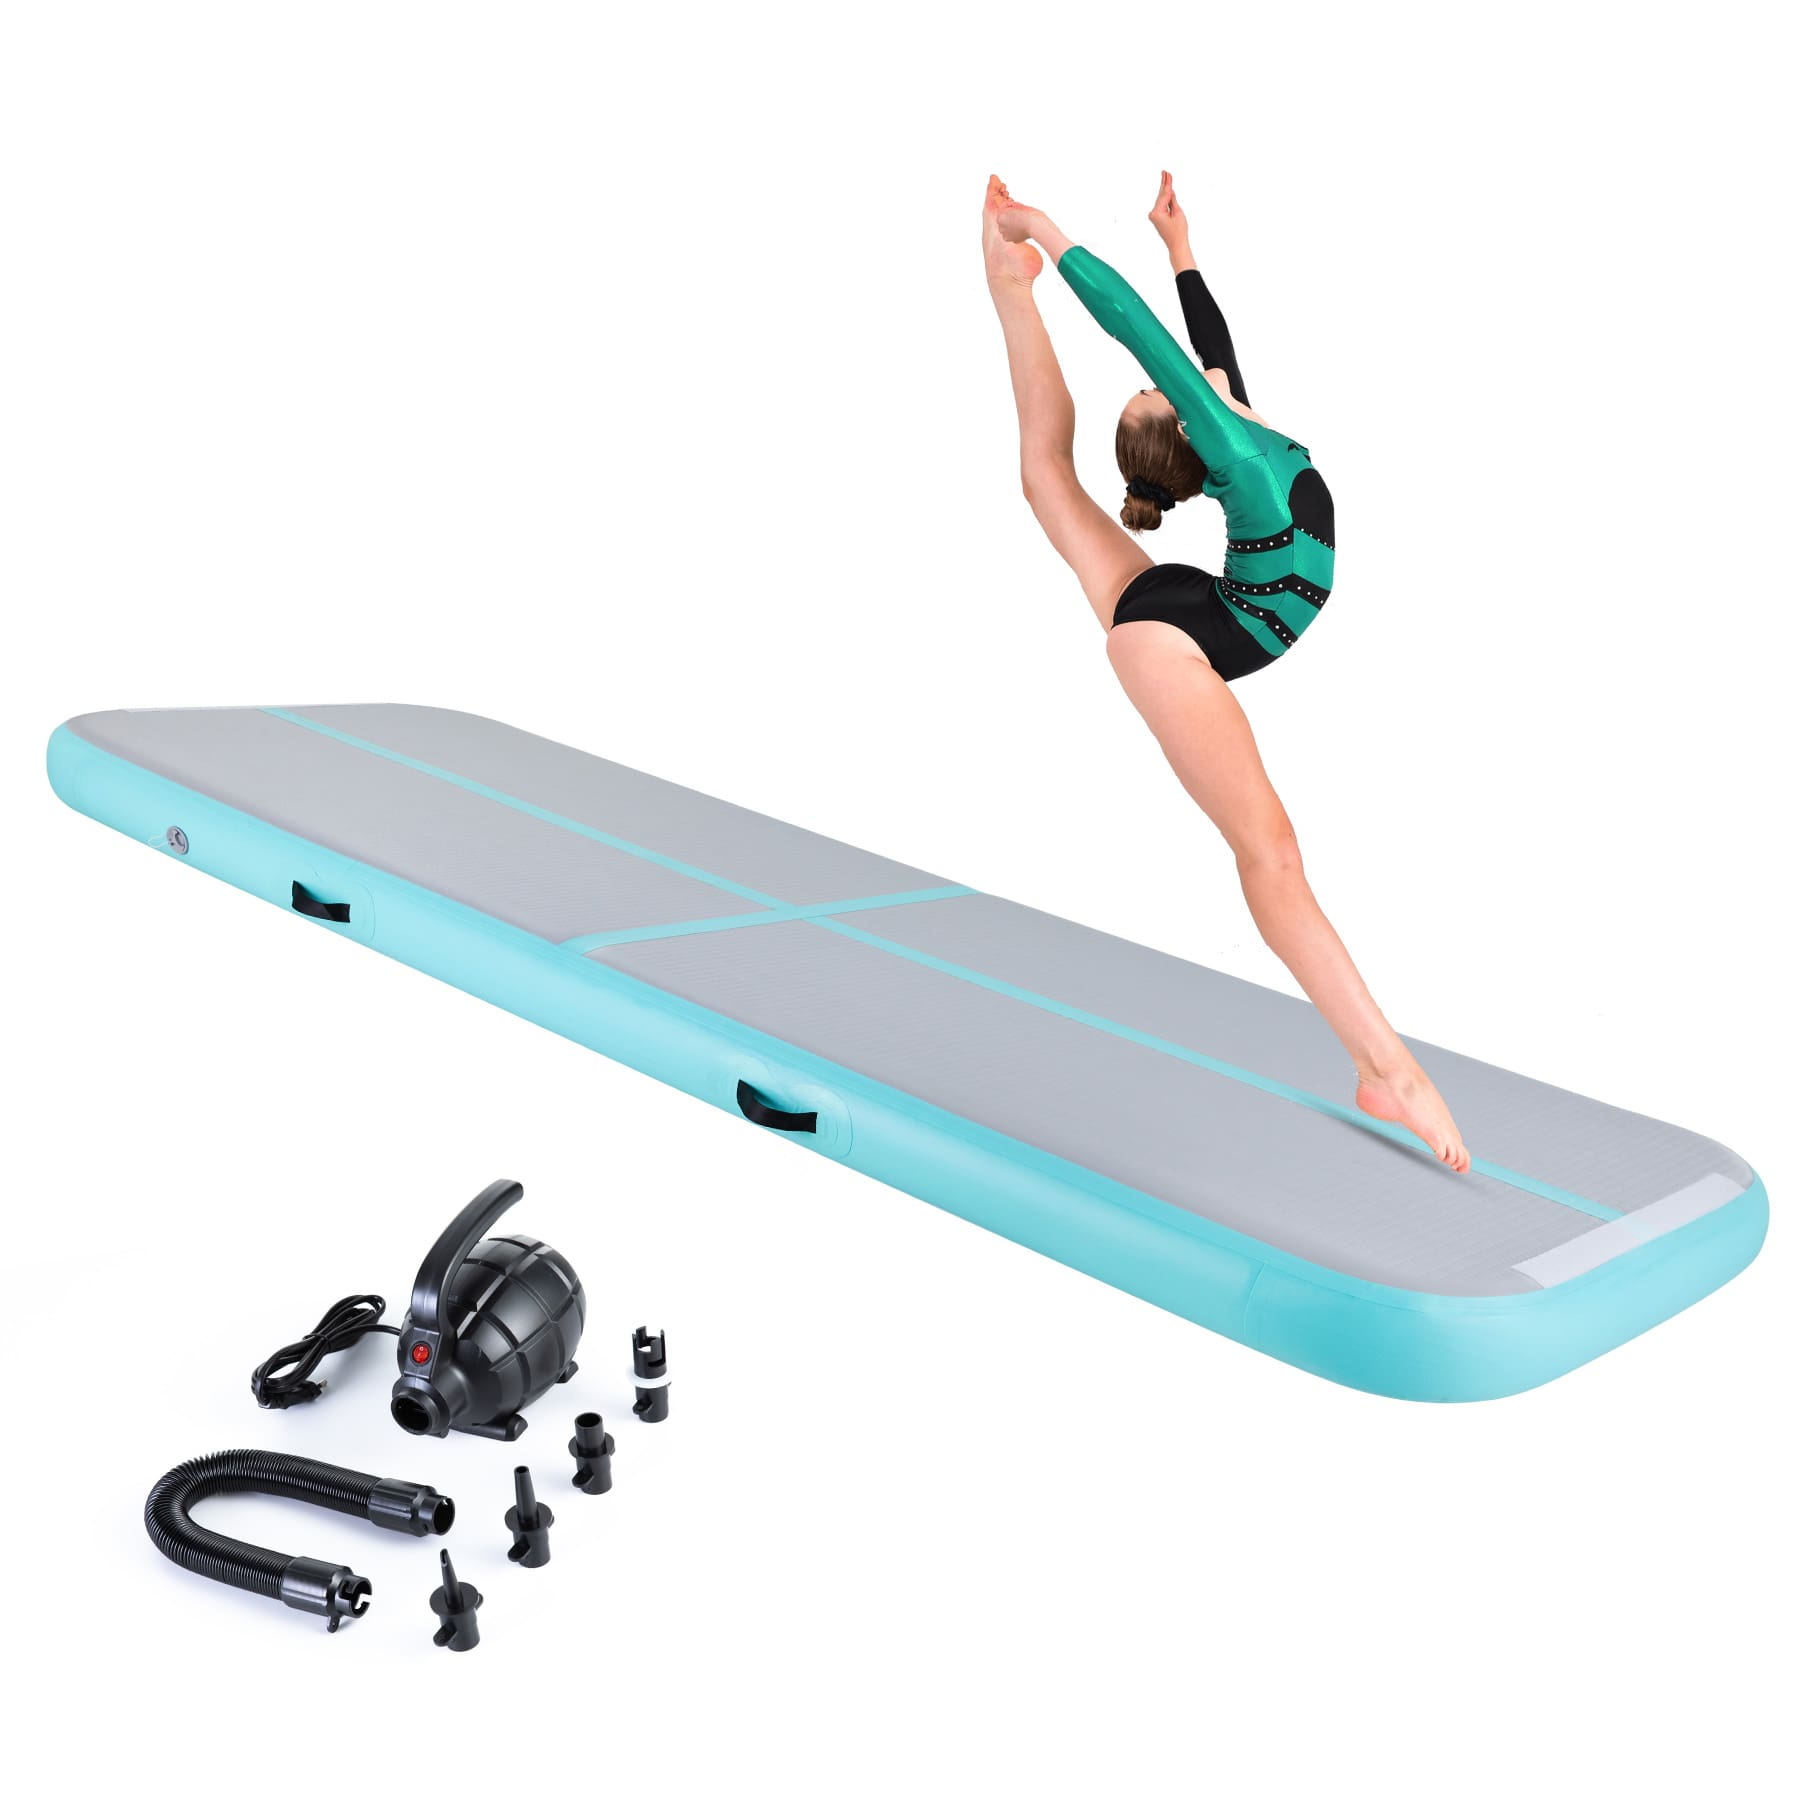 gymnastics performance training mat